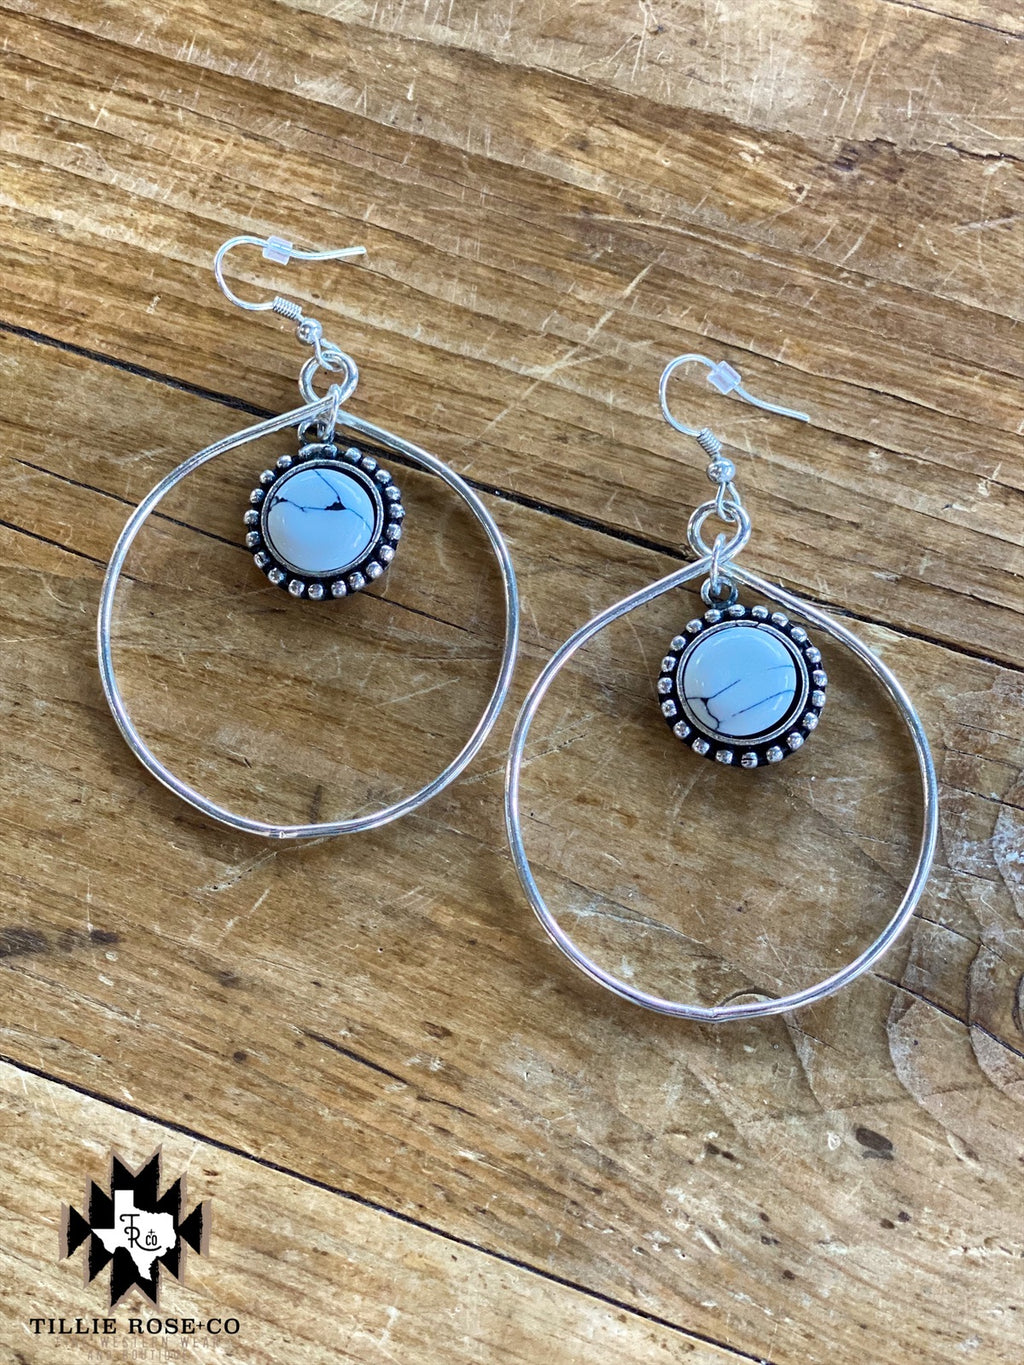 Bear Creek Hoop Earrings - The Tillie Rose Boutique